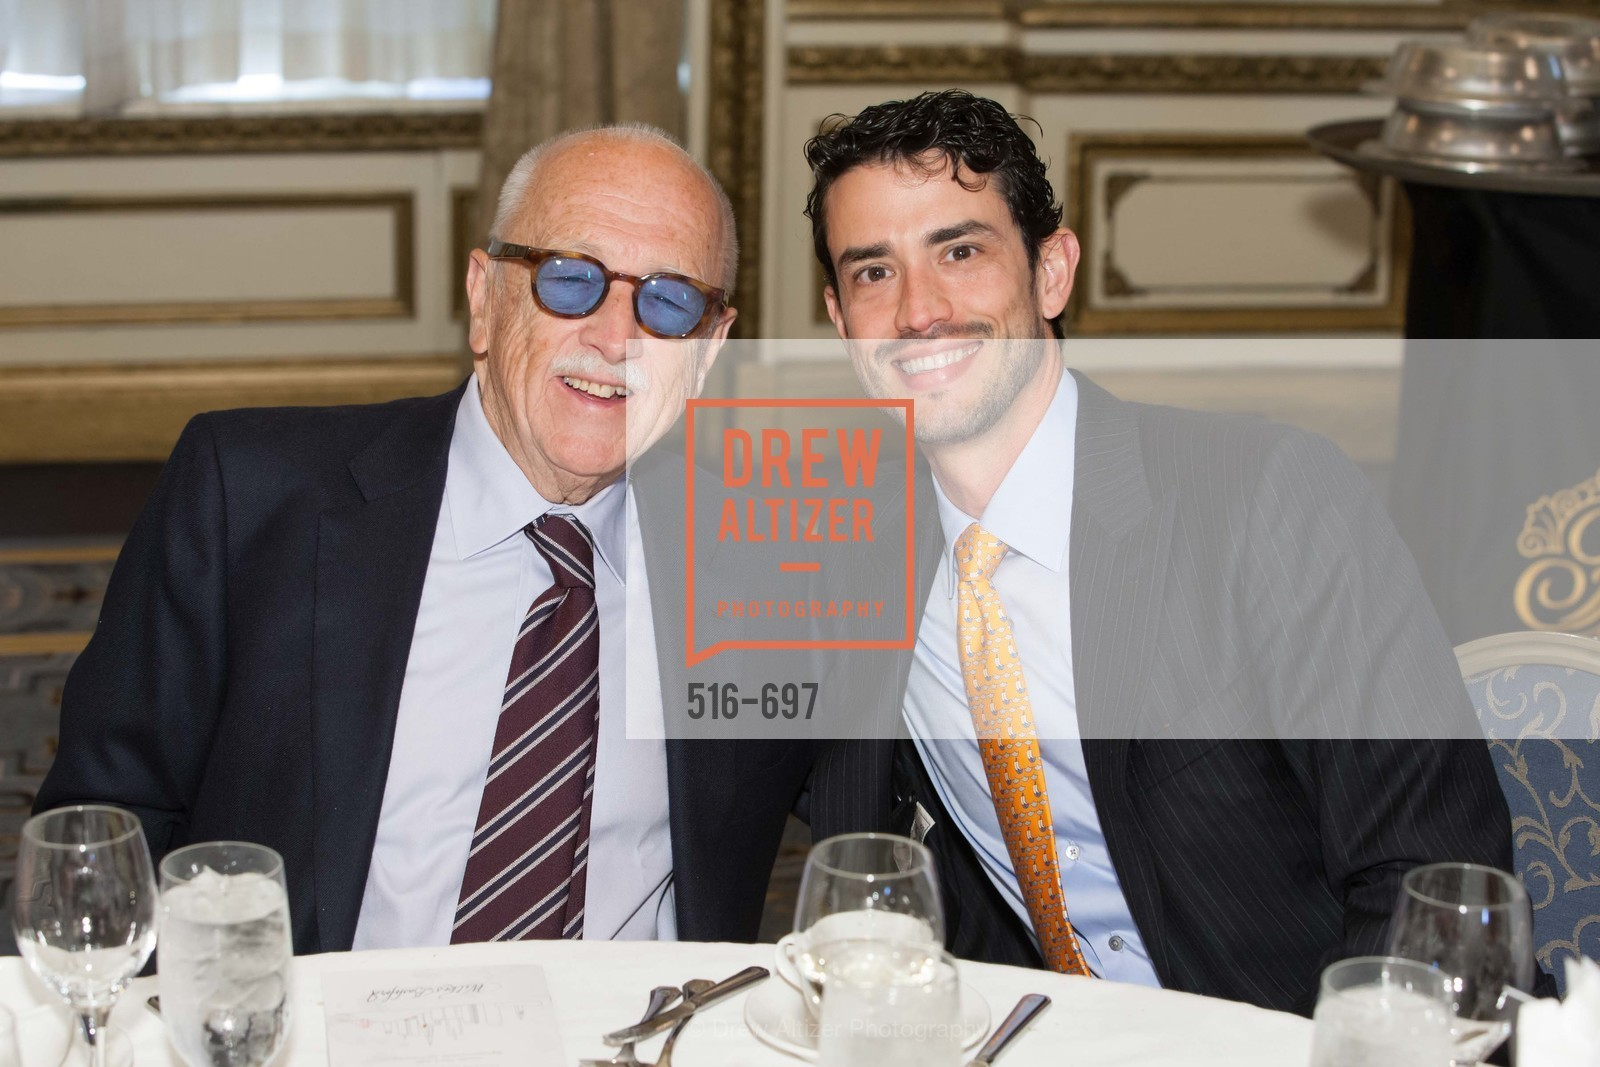 Wilkes Bashford, Frederico Soldino, JUNIOR LEAGUE OF SAN FRANCISCO's WATCH Luncheon, US, May 4th, 2015,Drew Altizer, Drew Altizer Photography, full-service agency, private events, San Francisco photographer, photographer california